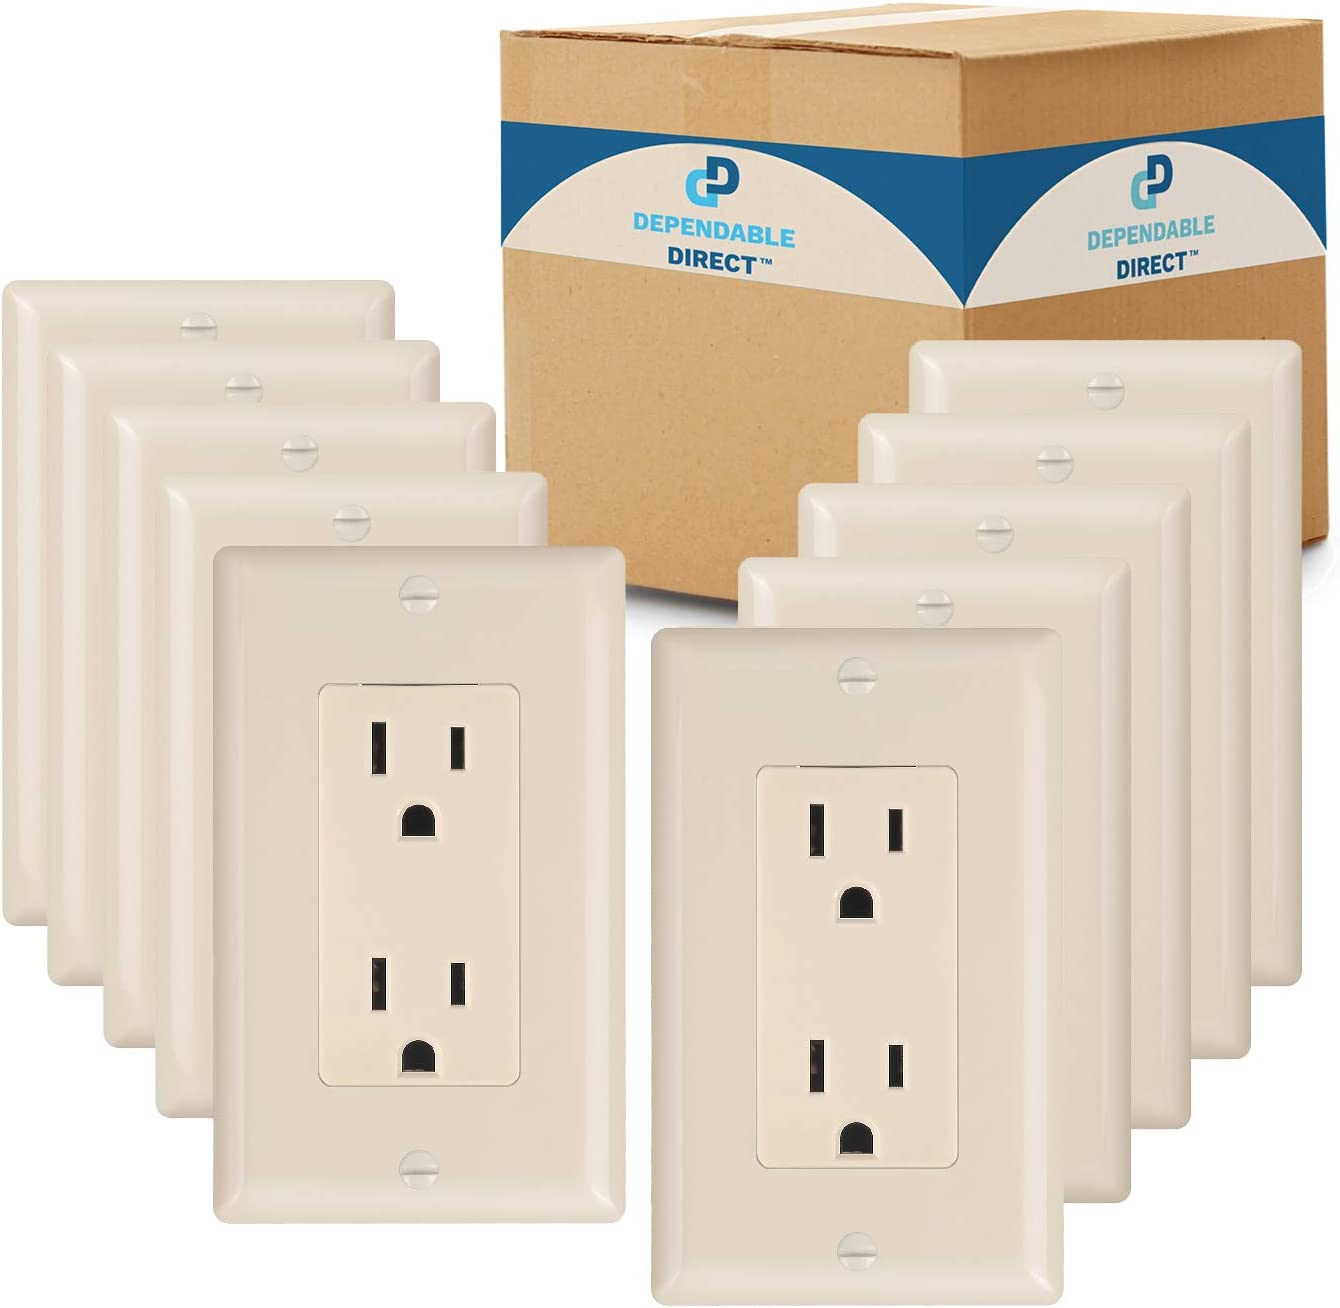 (10 Pack) Dependable Direct Duplex Wall Outlet Receptacles - 15-Amp 125-Volt - UL Listed, cUL Listed Electrical Wall Outlets - Wall Plate and Screws Included, Ivory